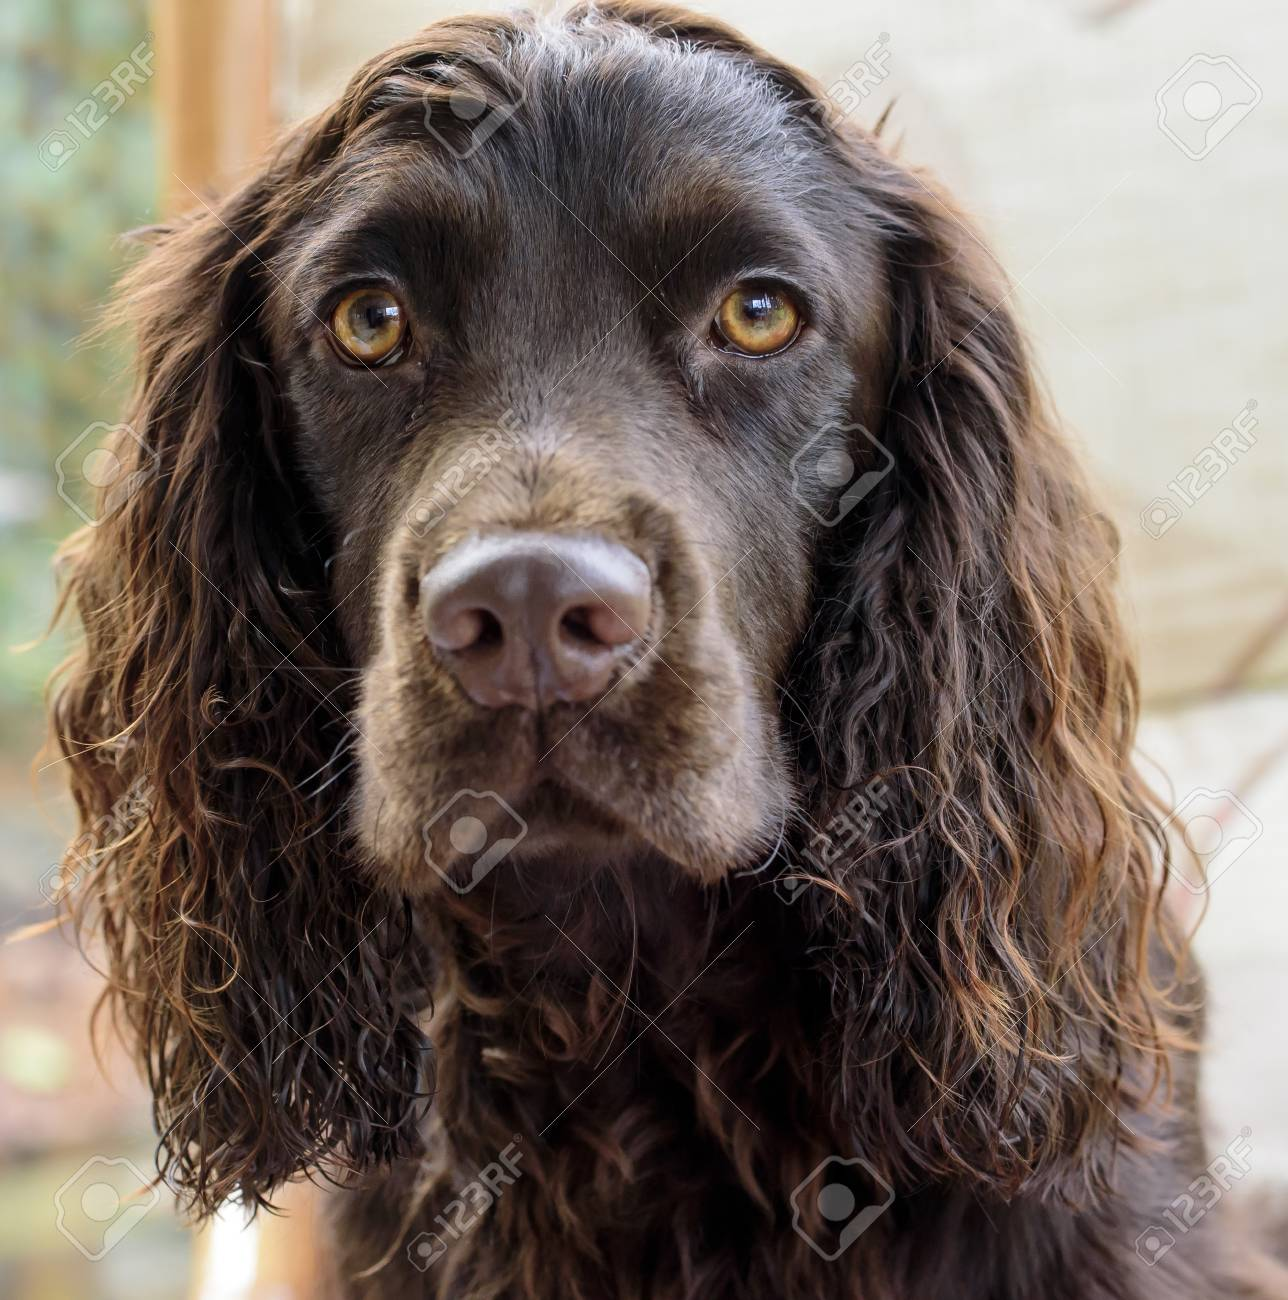 Beautiful Face Of A Chocolate Cocker Spaniel Stock Photo Picture And Royalty Free Image Image 93144501